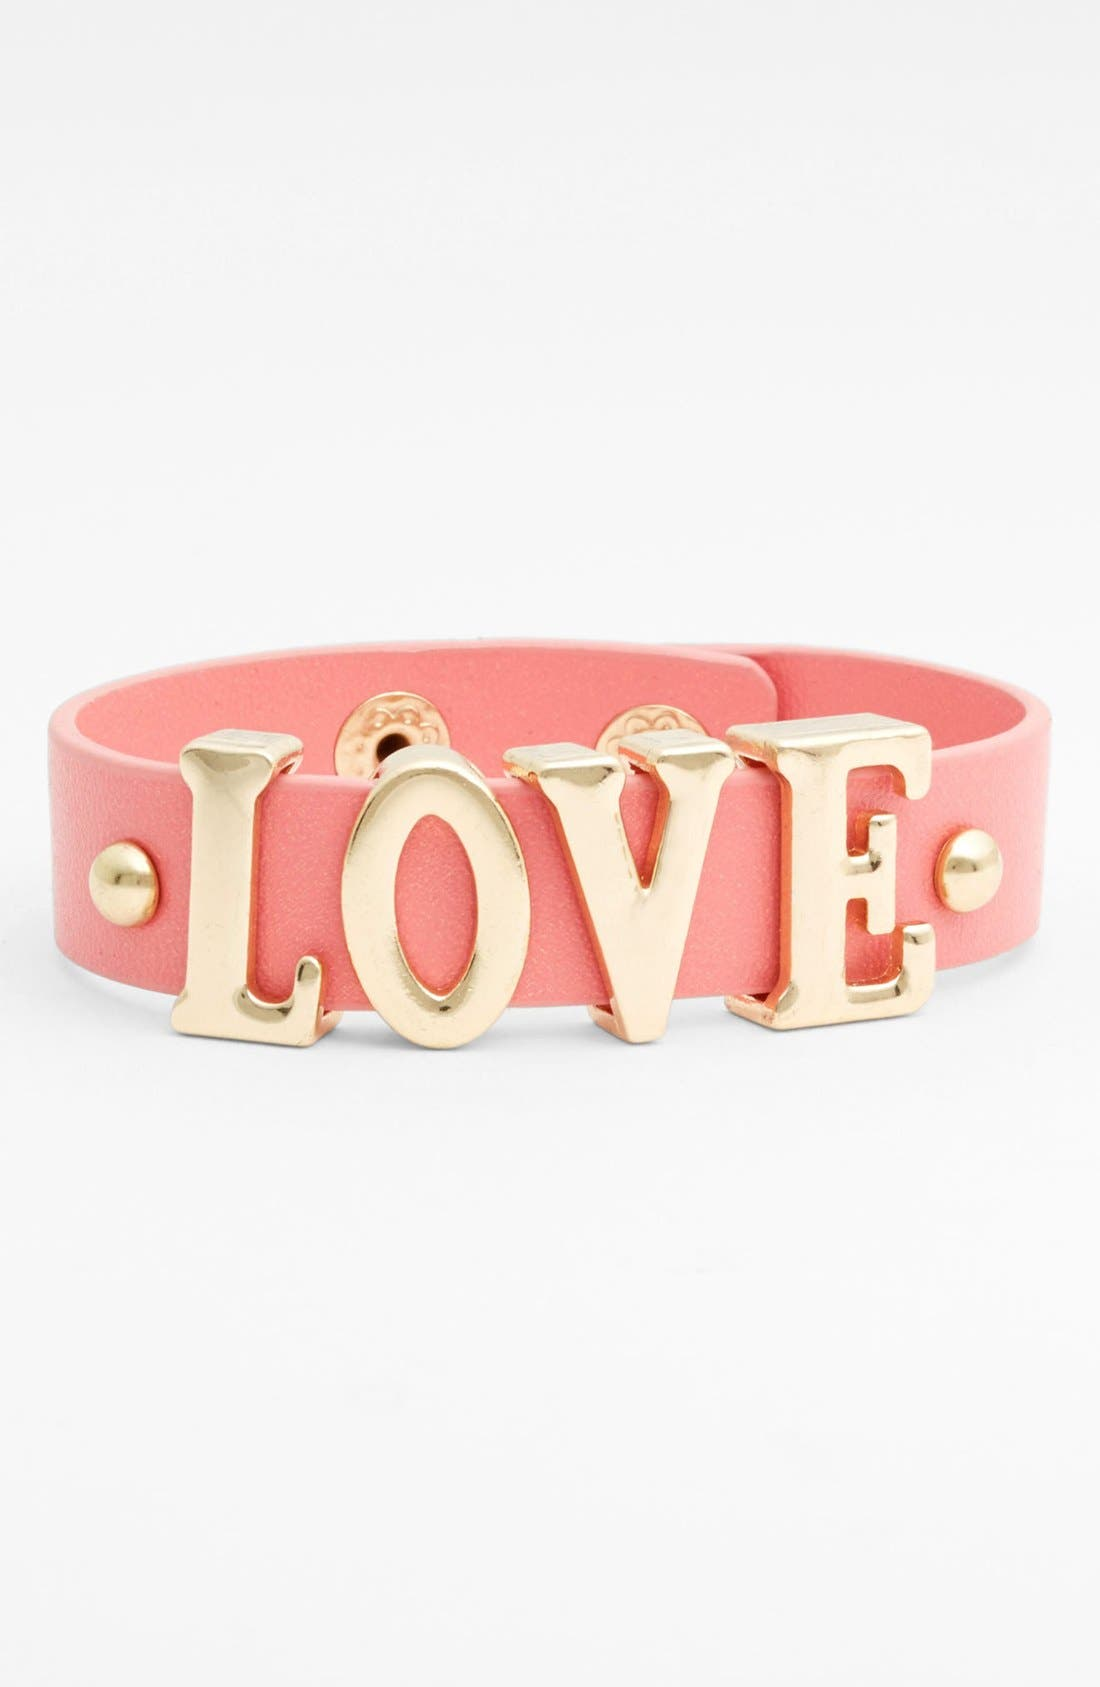 Alternate Image 1 Selected - Carole 'Love' Wrap Bracelet (Juniors) (Online Only)